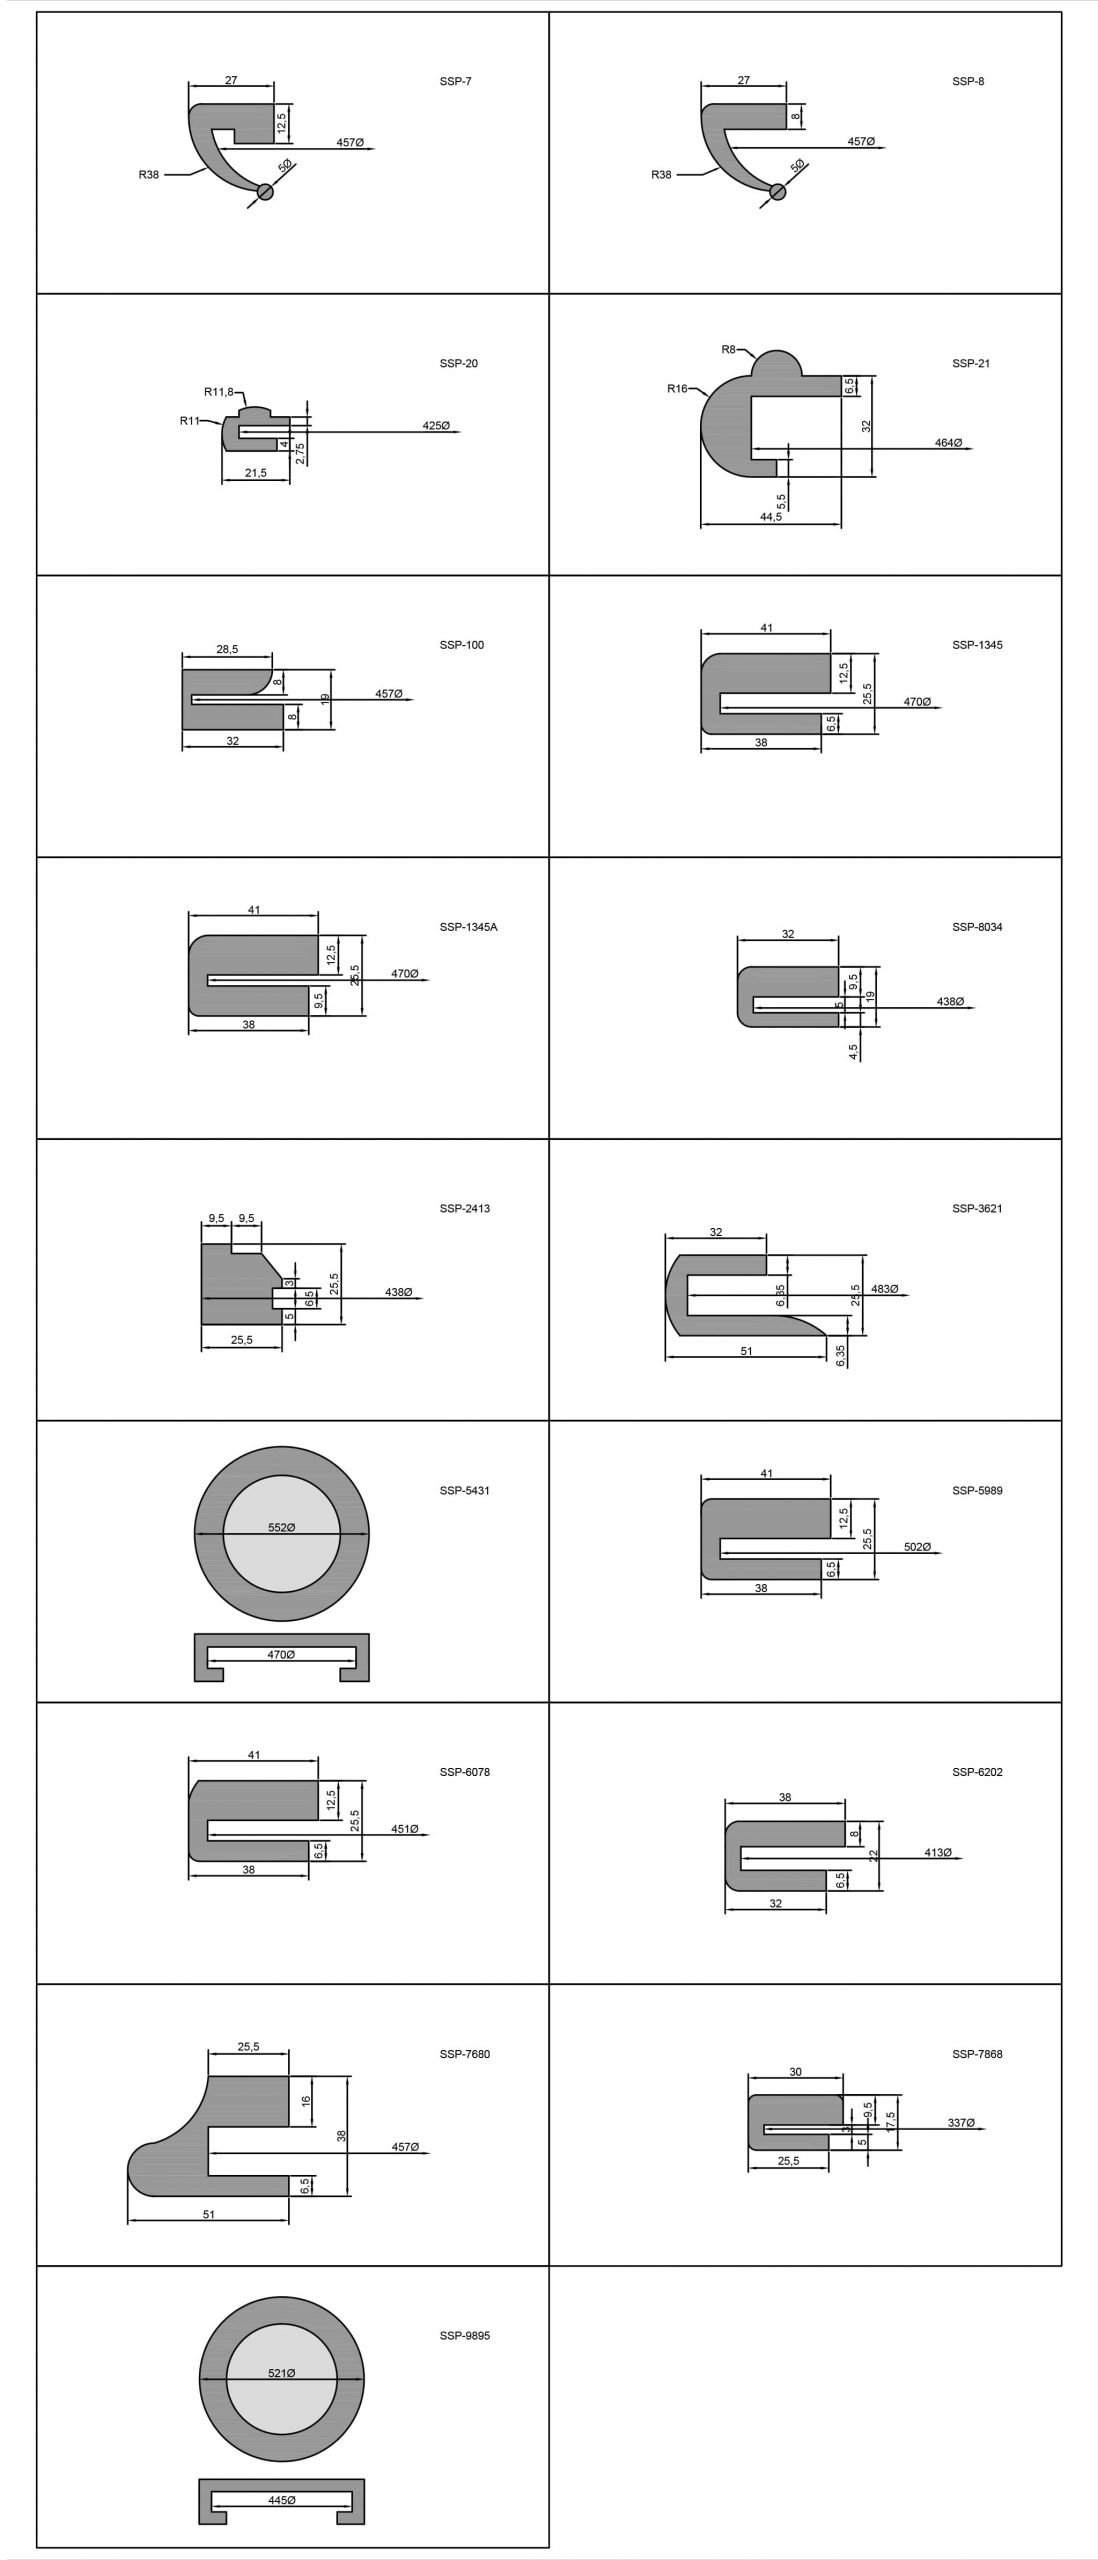 Manway Door Seals and Gasket Profiles